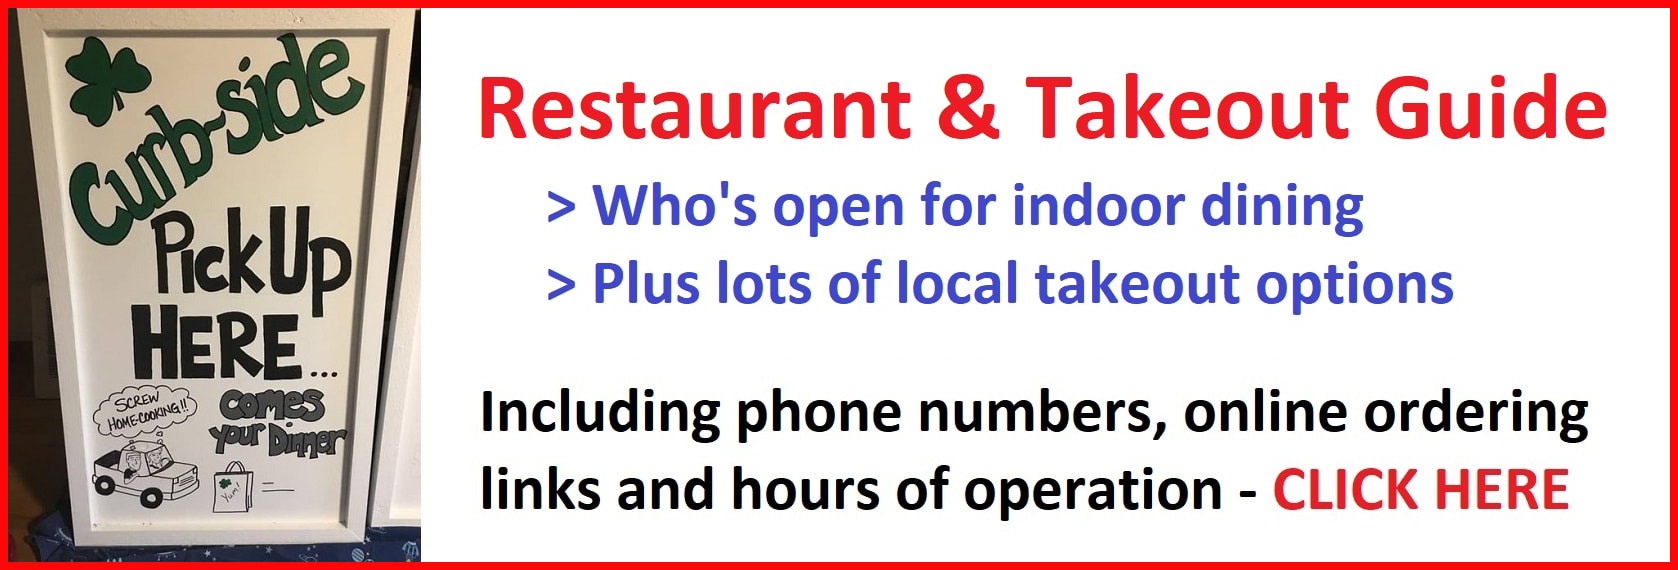 take-out-banner2-dine-in-opens-slider-w1678.jpg